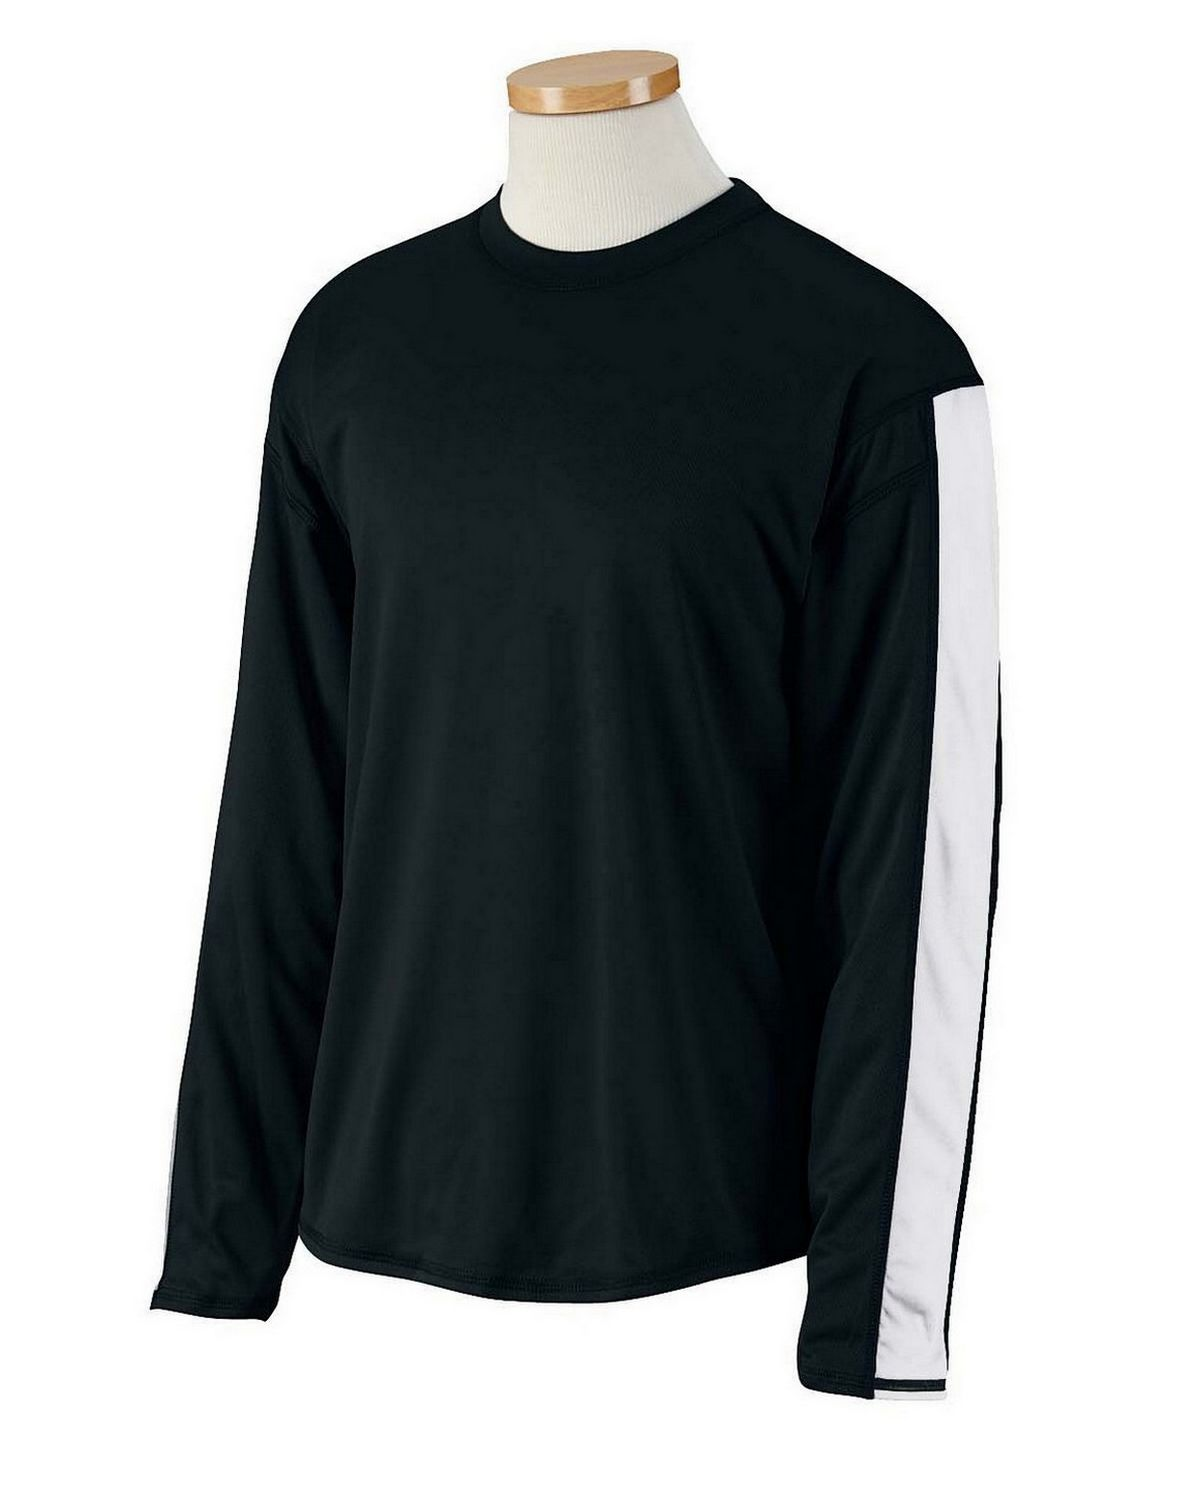 cc9eb0da Russell Athletic 6B5DPM Dri-Power Long-Sleeve Performance T-Shirt.  Decoration. Model image. May not reflect selected color. No Picture